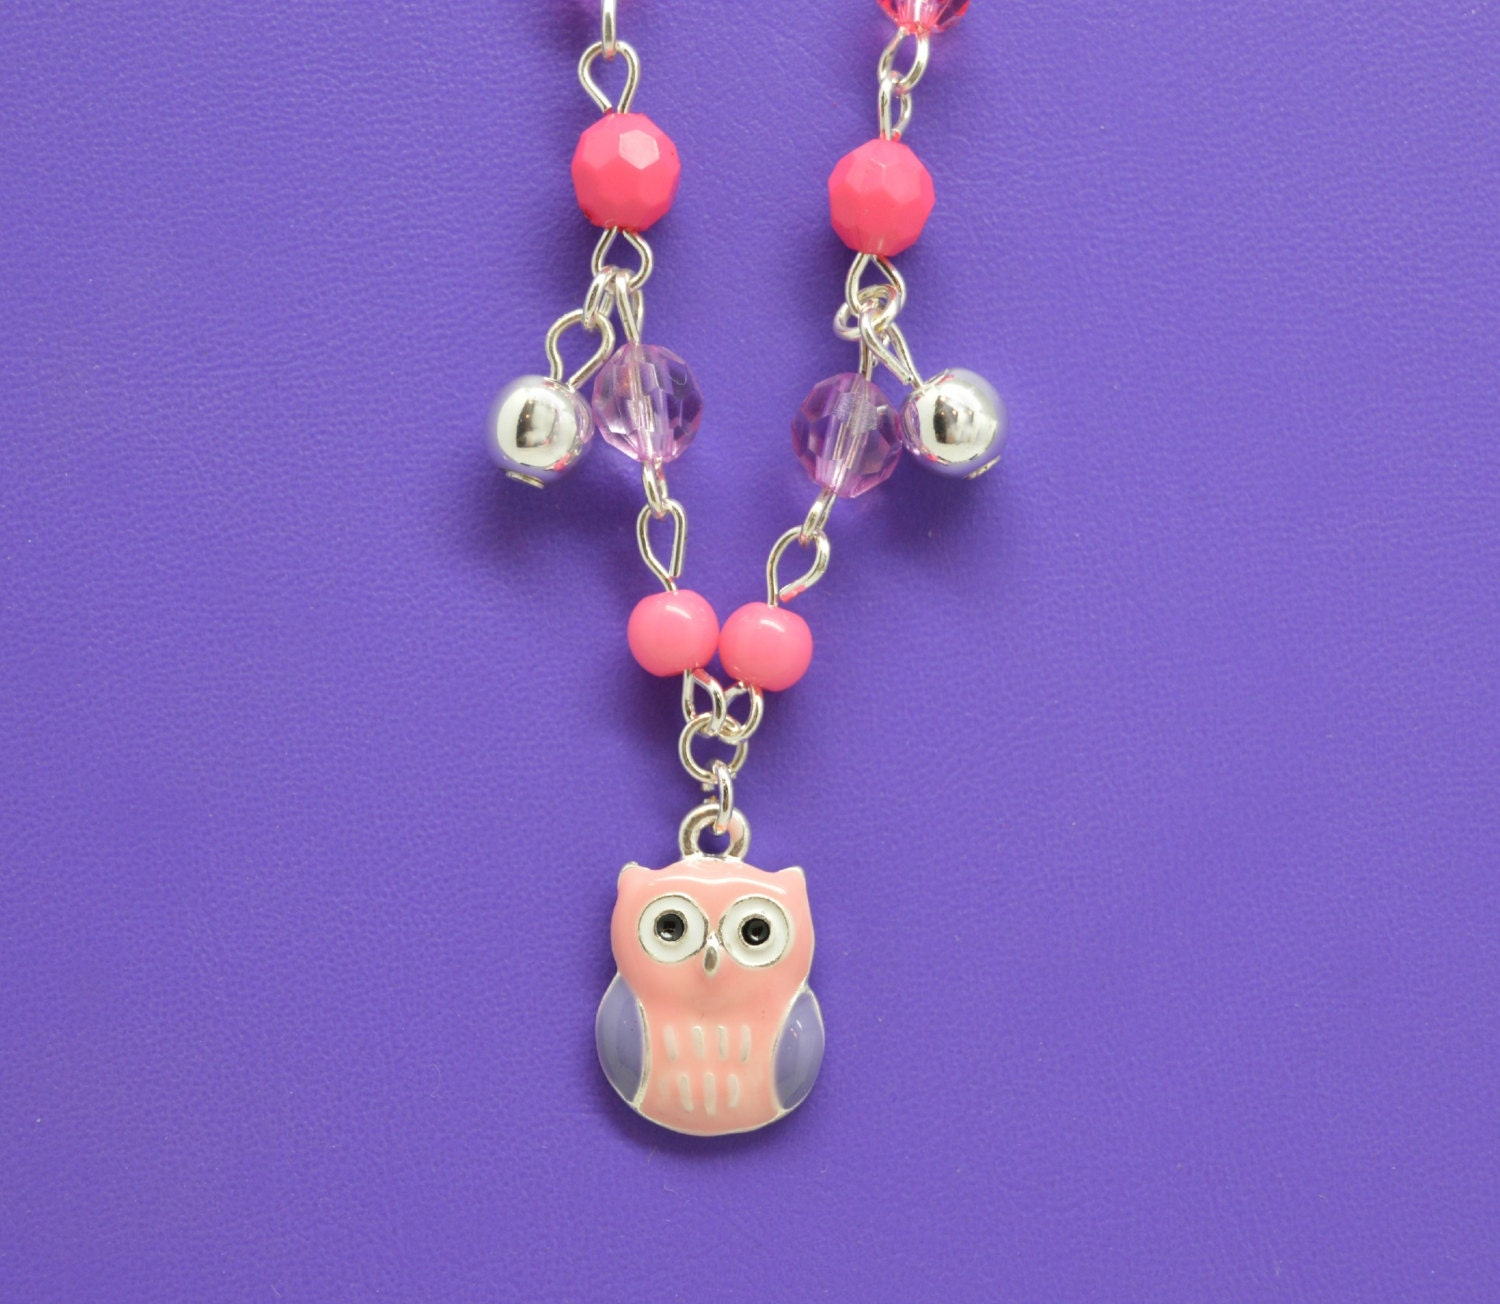 owl charm necklace little girls jewelry adorable pink owl. Black Bedroom Furniture Sets. Home Design Ideas